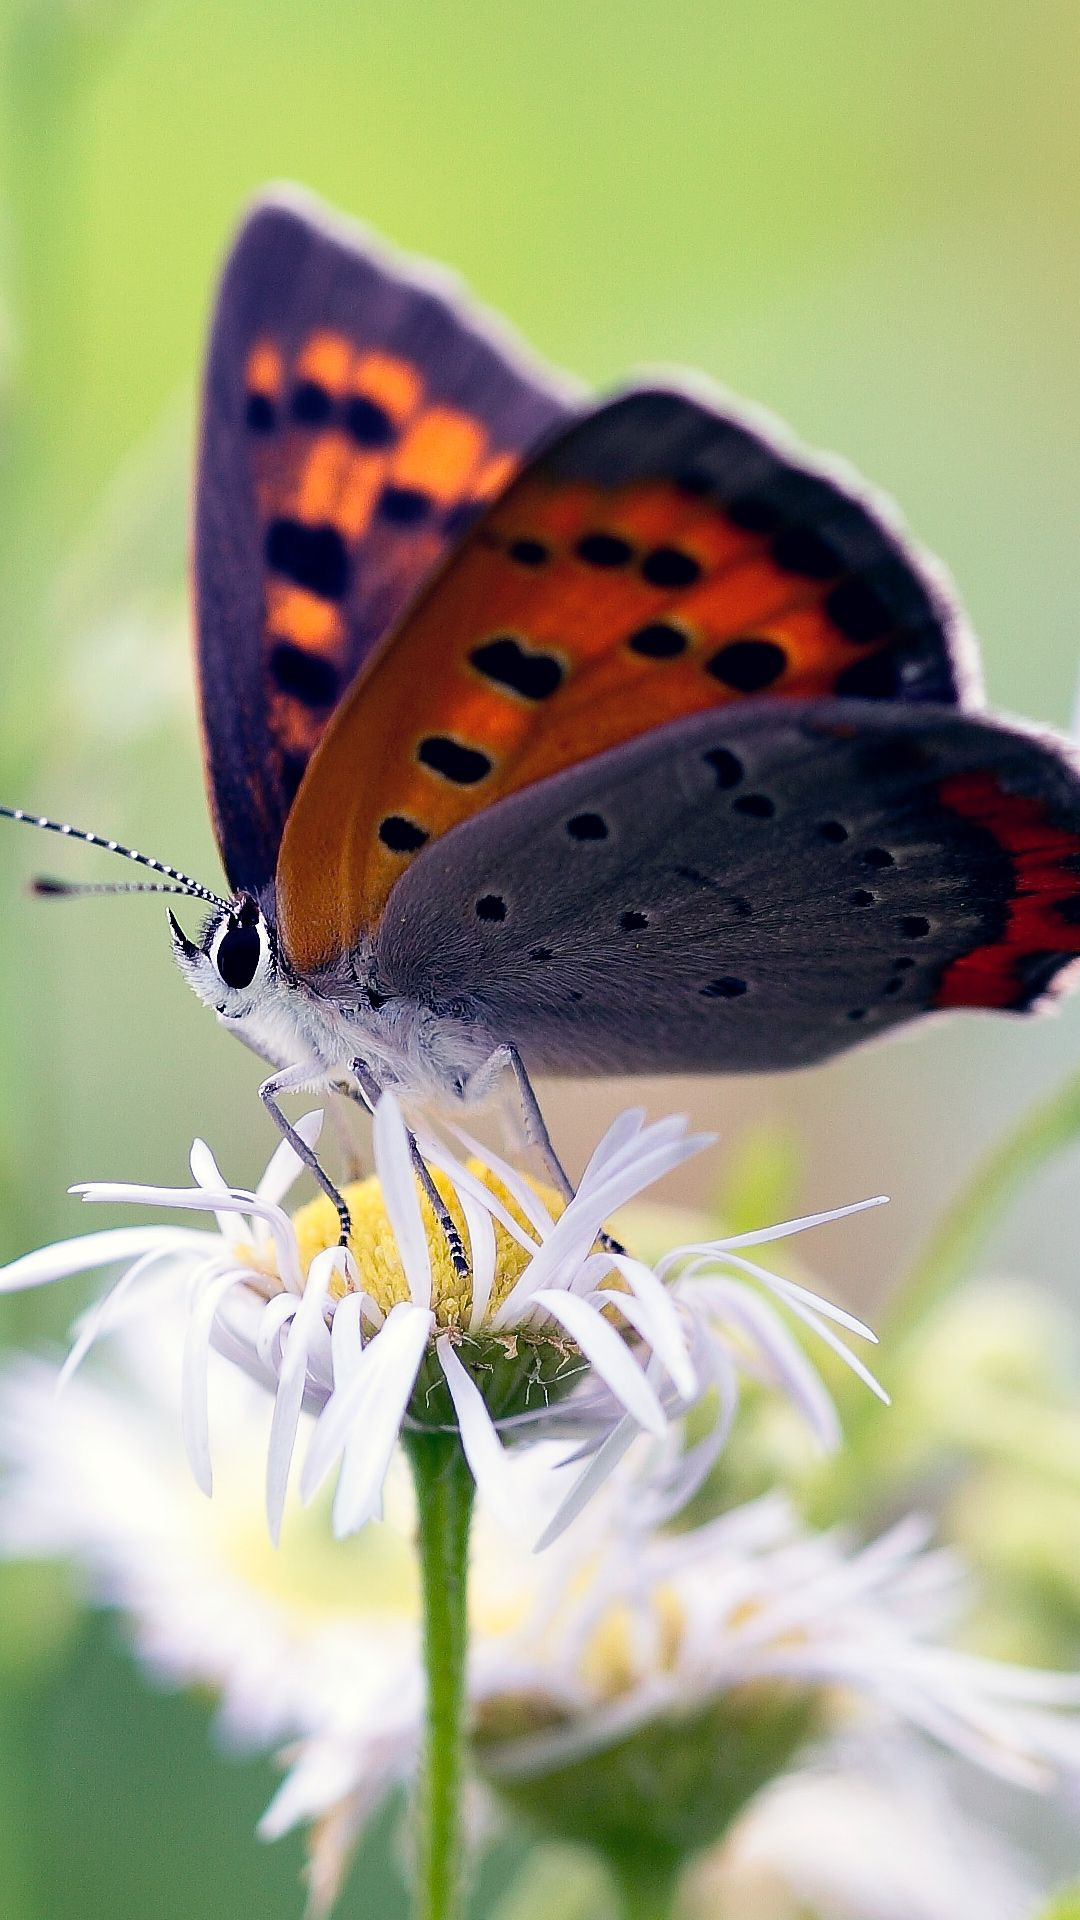 Amazing Butterfly On Flower Free Nature Hd Wallpaper Flower Desktop Wallpaper Butterfly Wallpaper Iphone Flower Wallpaper